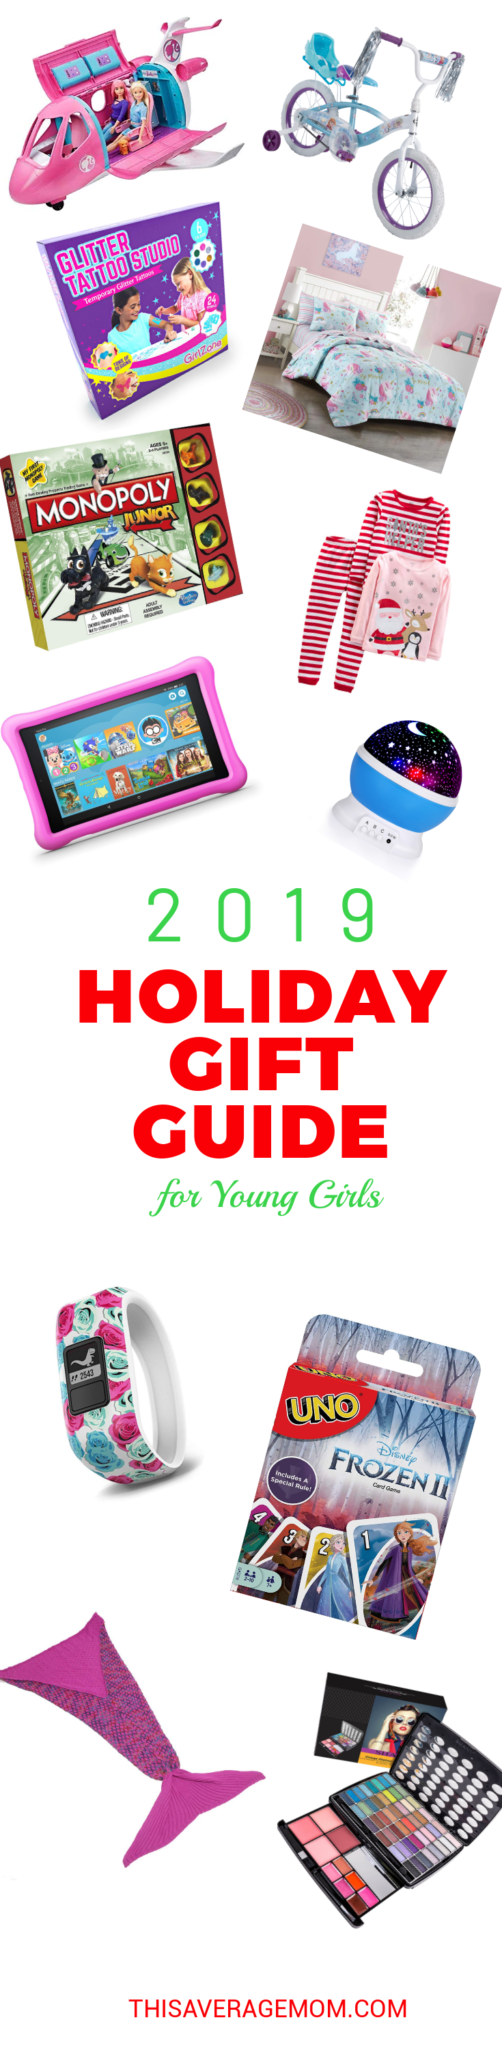 Need some gift ideas for young girls? I have you covered! Here's 12 gifts that the young girls in your life will love this Christmas. #christmaslist #santa #holidays